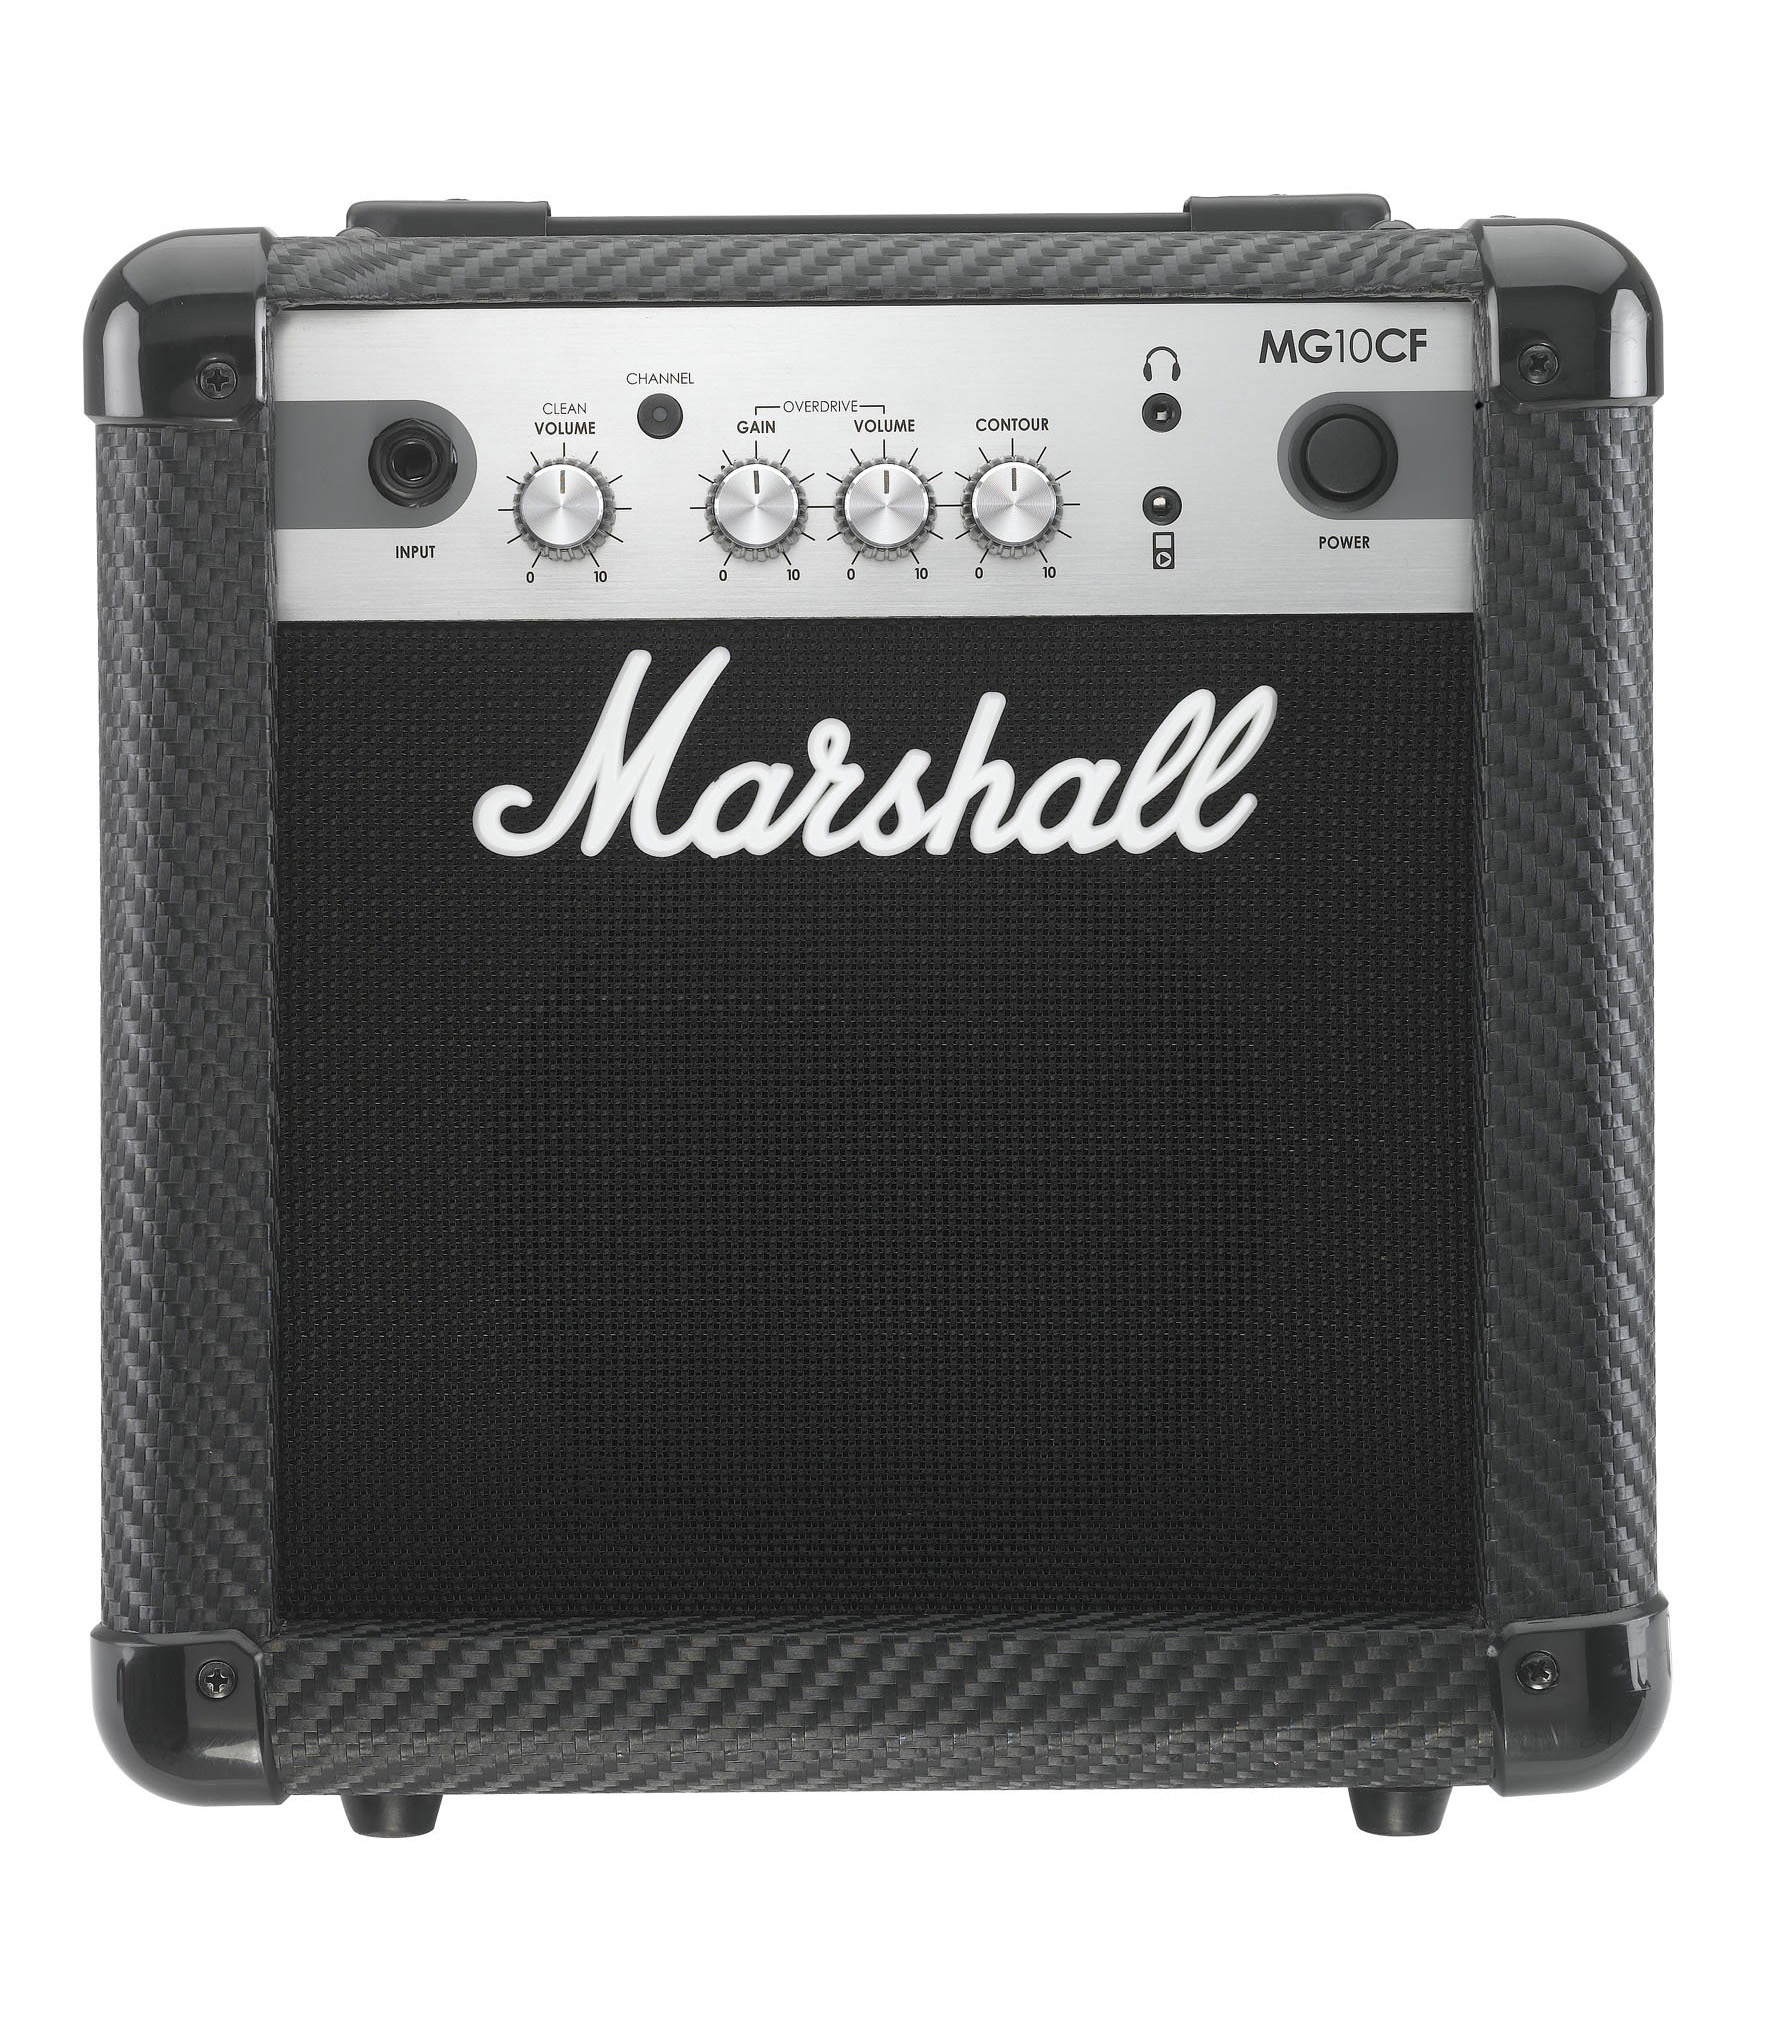 buy marshall mg10cf solid state guitar amp 2 channe